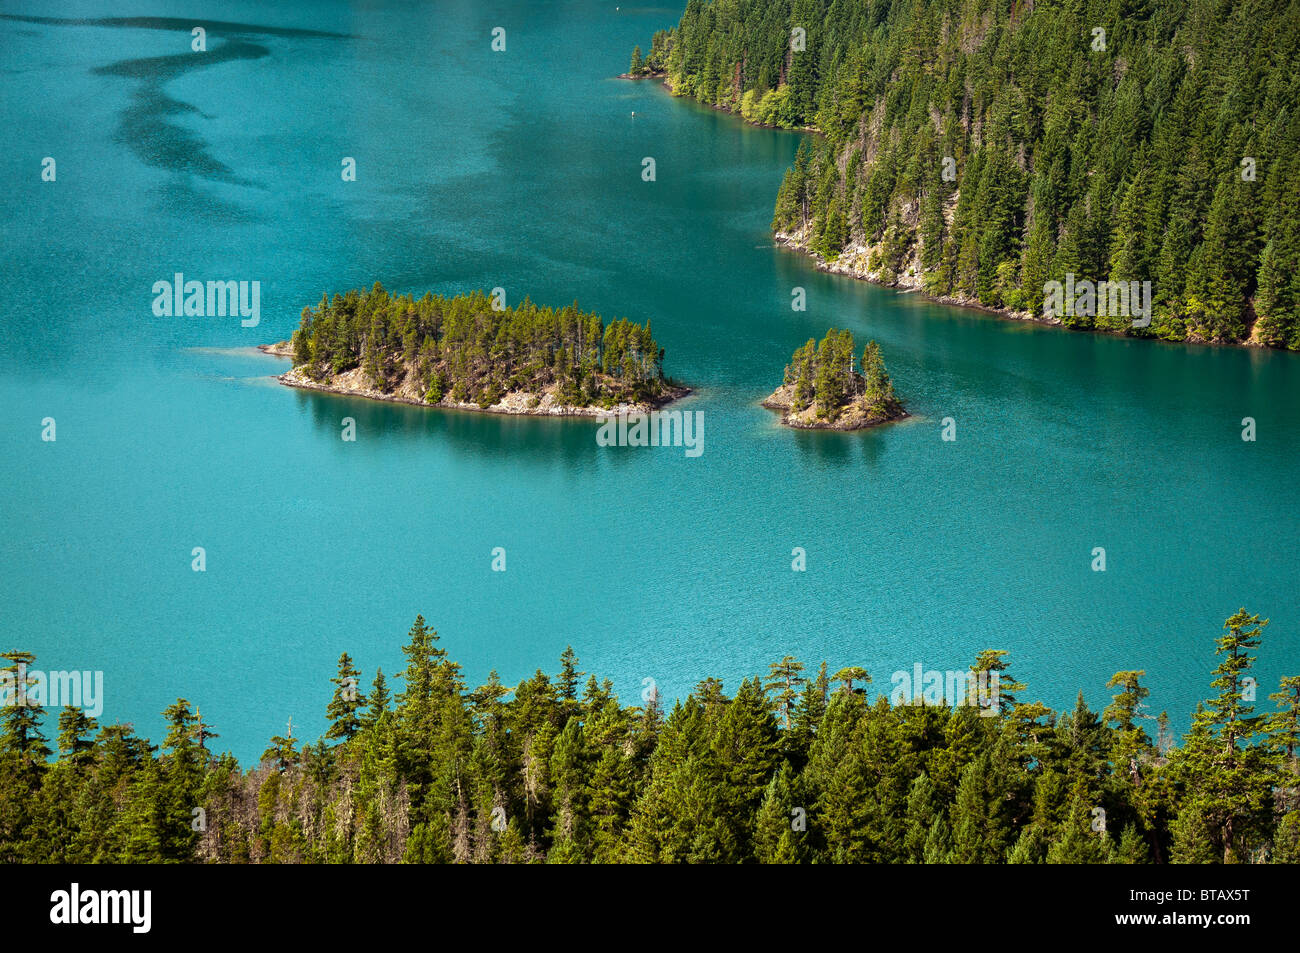 Diablo Lake islands from overlook, Ross Lake National Recreation Area, North Cascades, Washington. - Stock Image